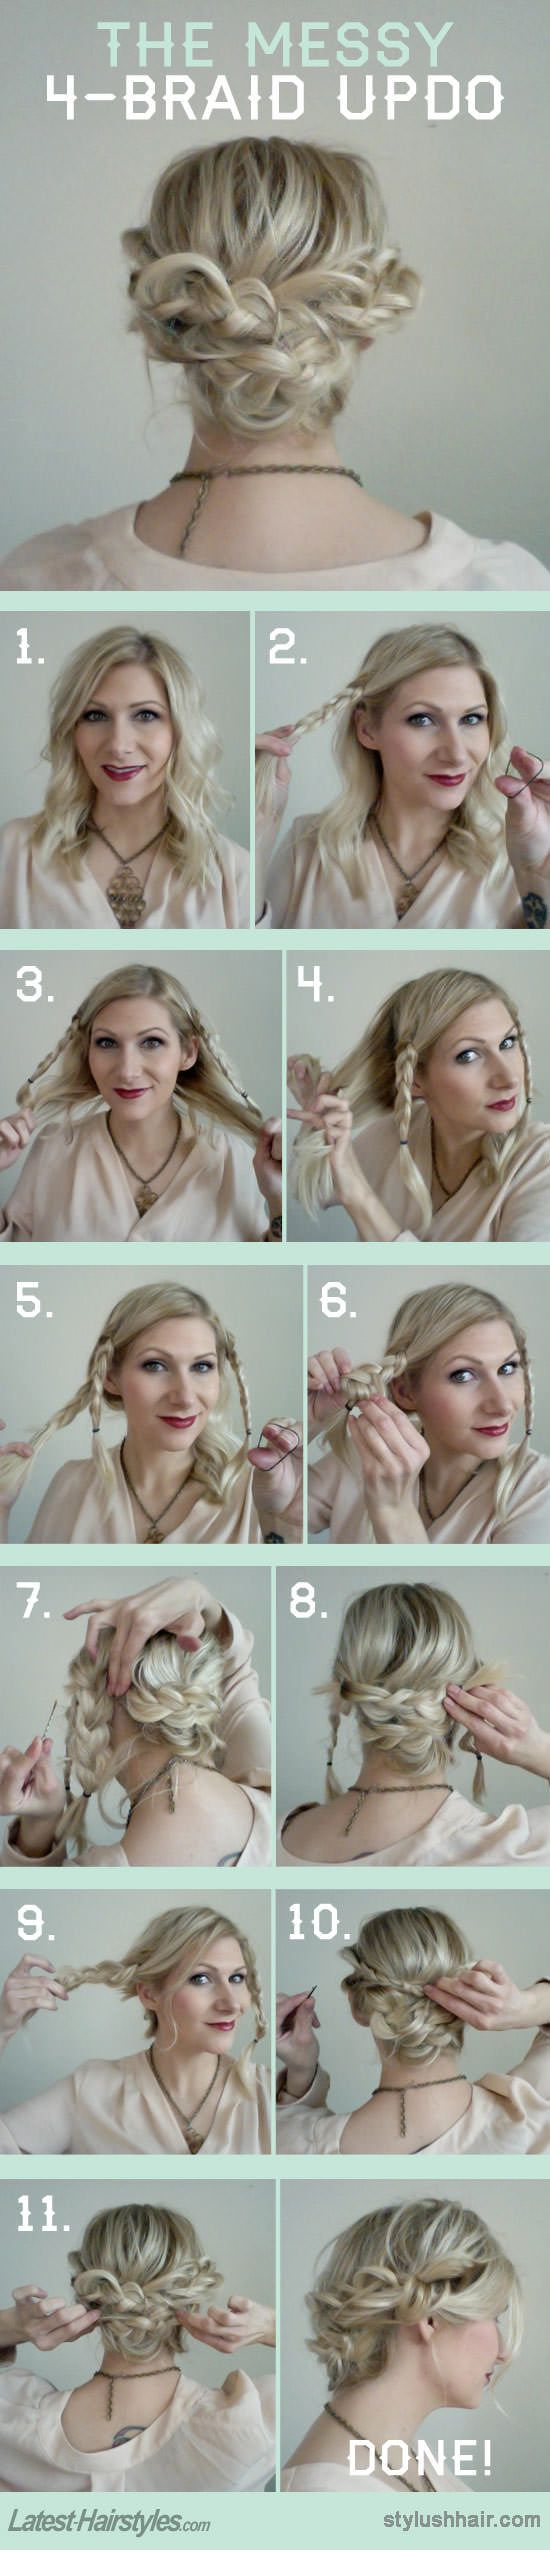 How To The Messy 4 Braid Updo Full Tutorial Here Http